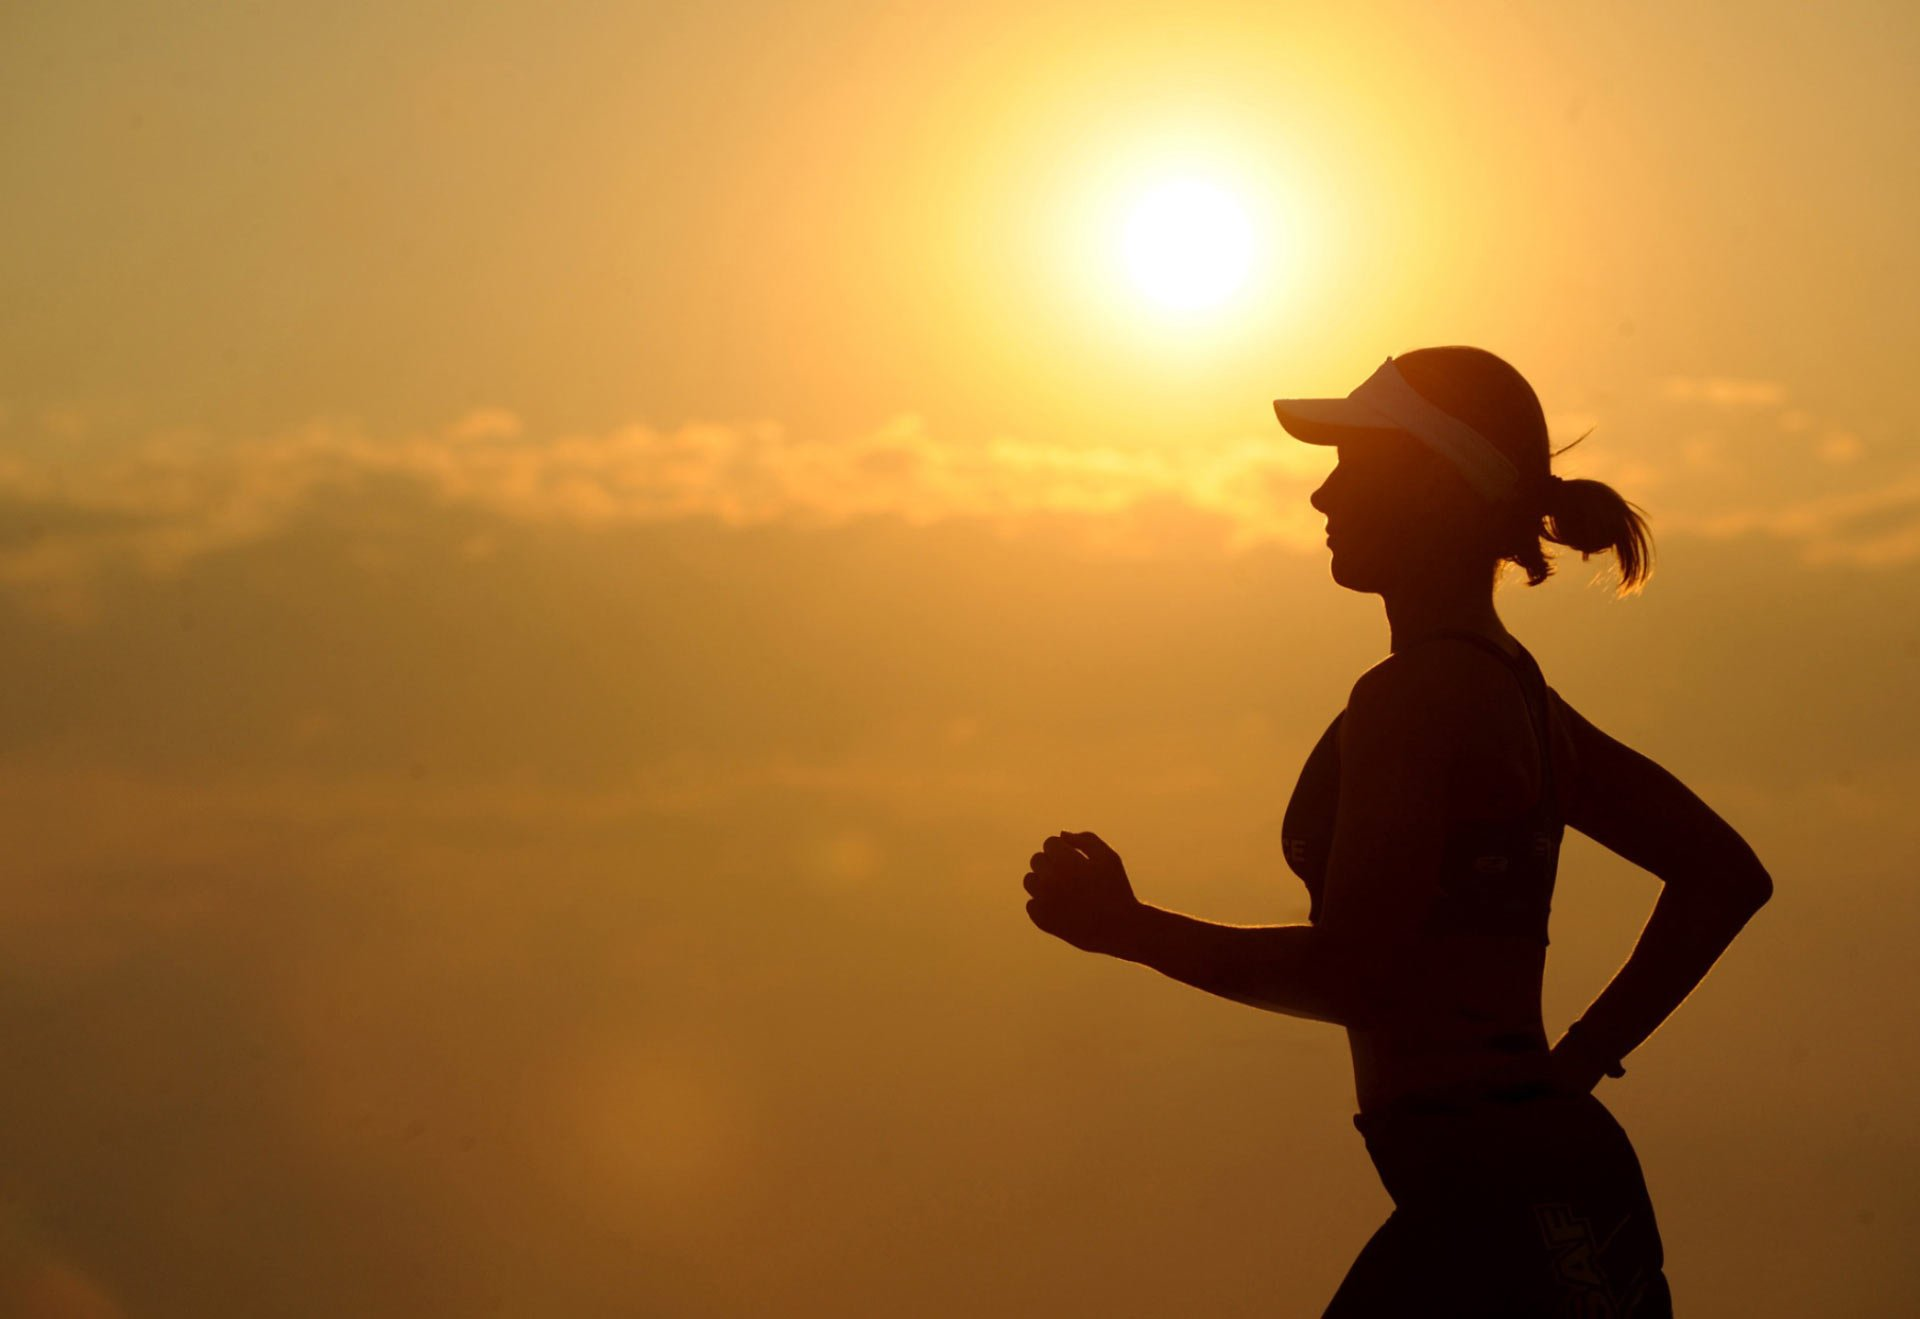 ARE YOU AN EXERCISE FREAK? DON'T BE SO